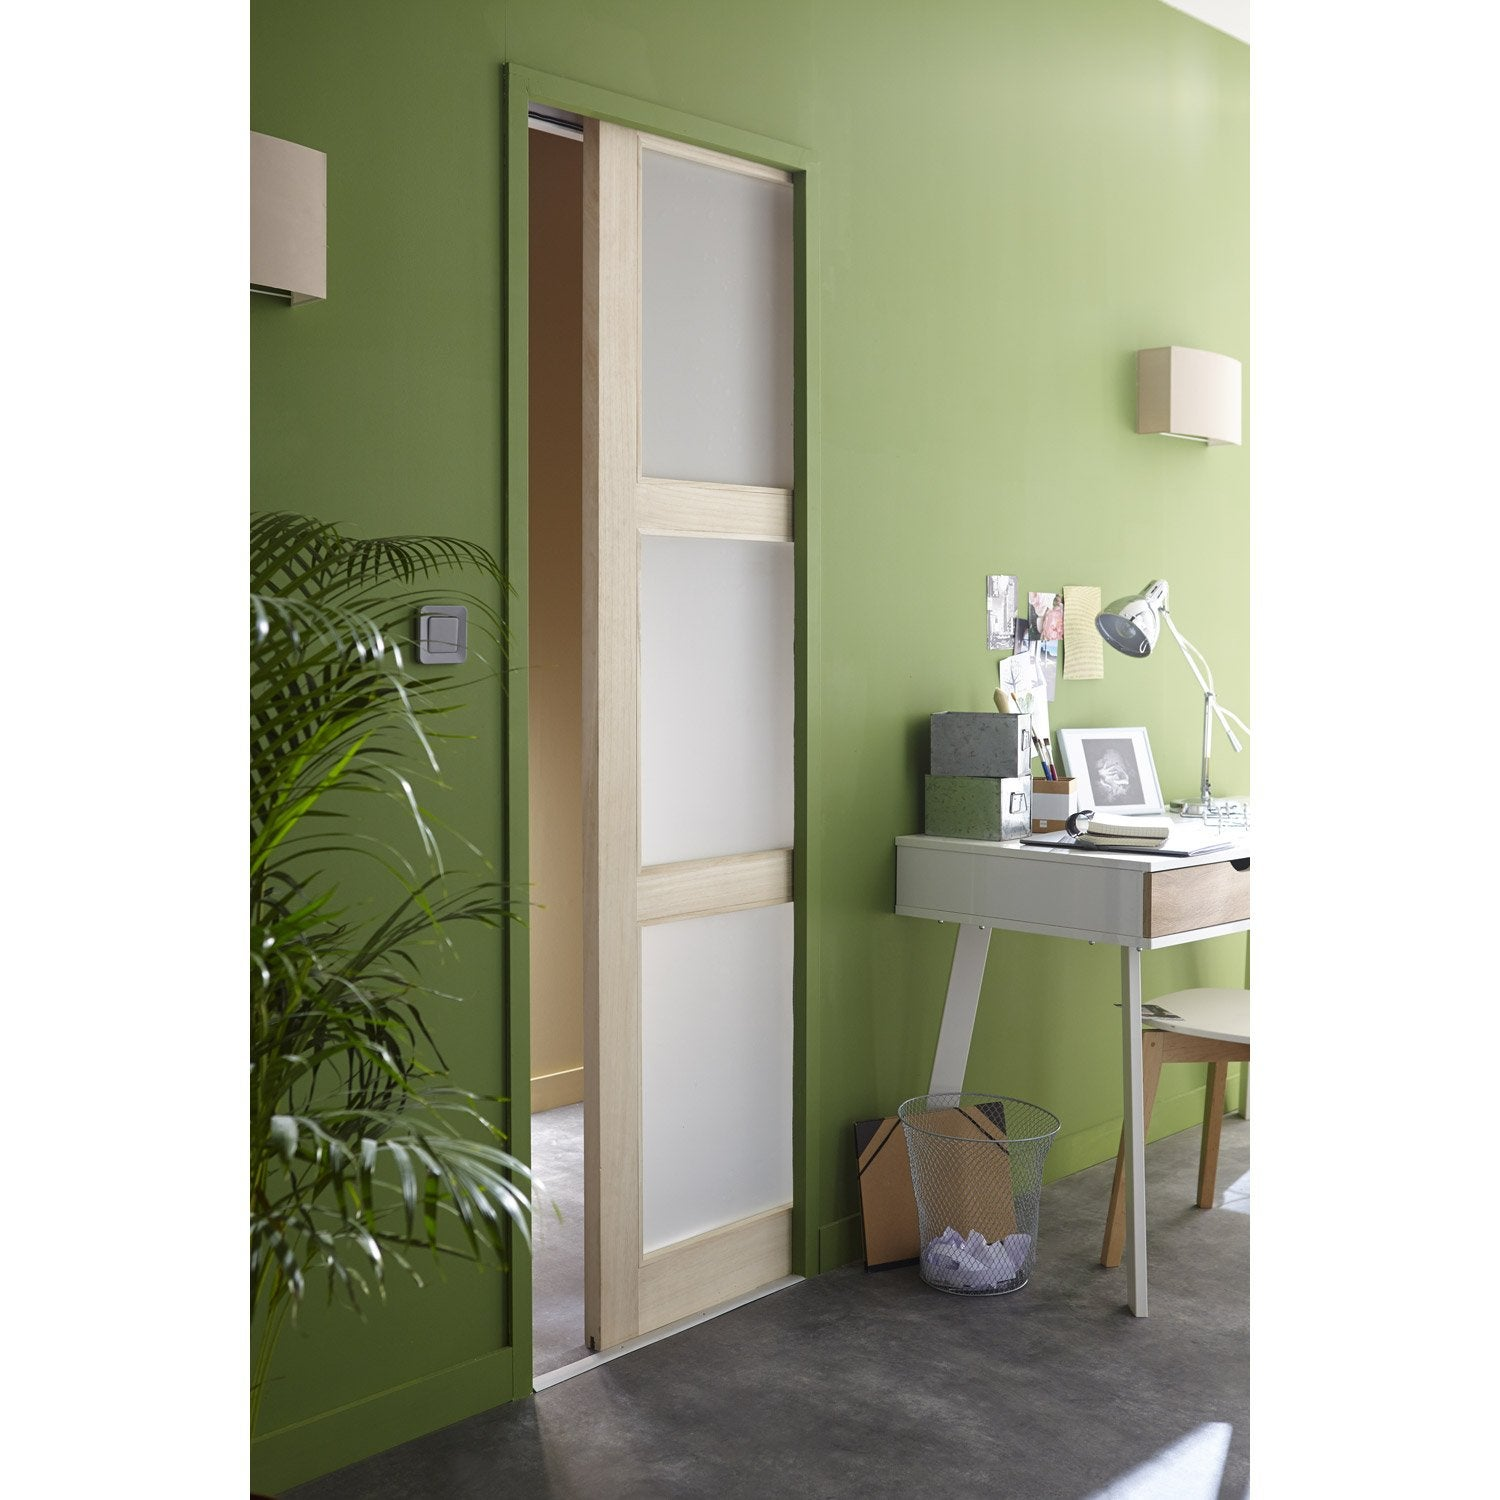 Ensemble porte coulissante bowen paulownia avec galandage for Porte coulissante salon